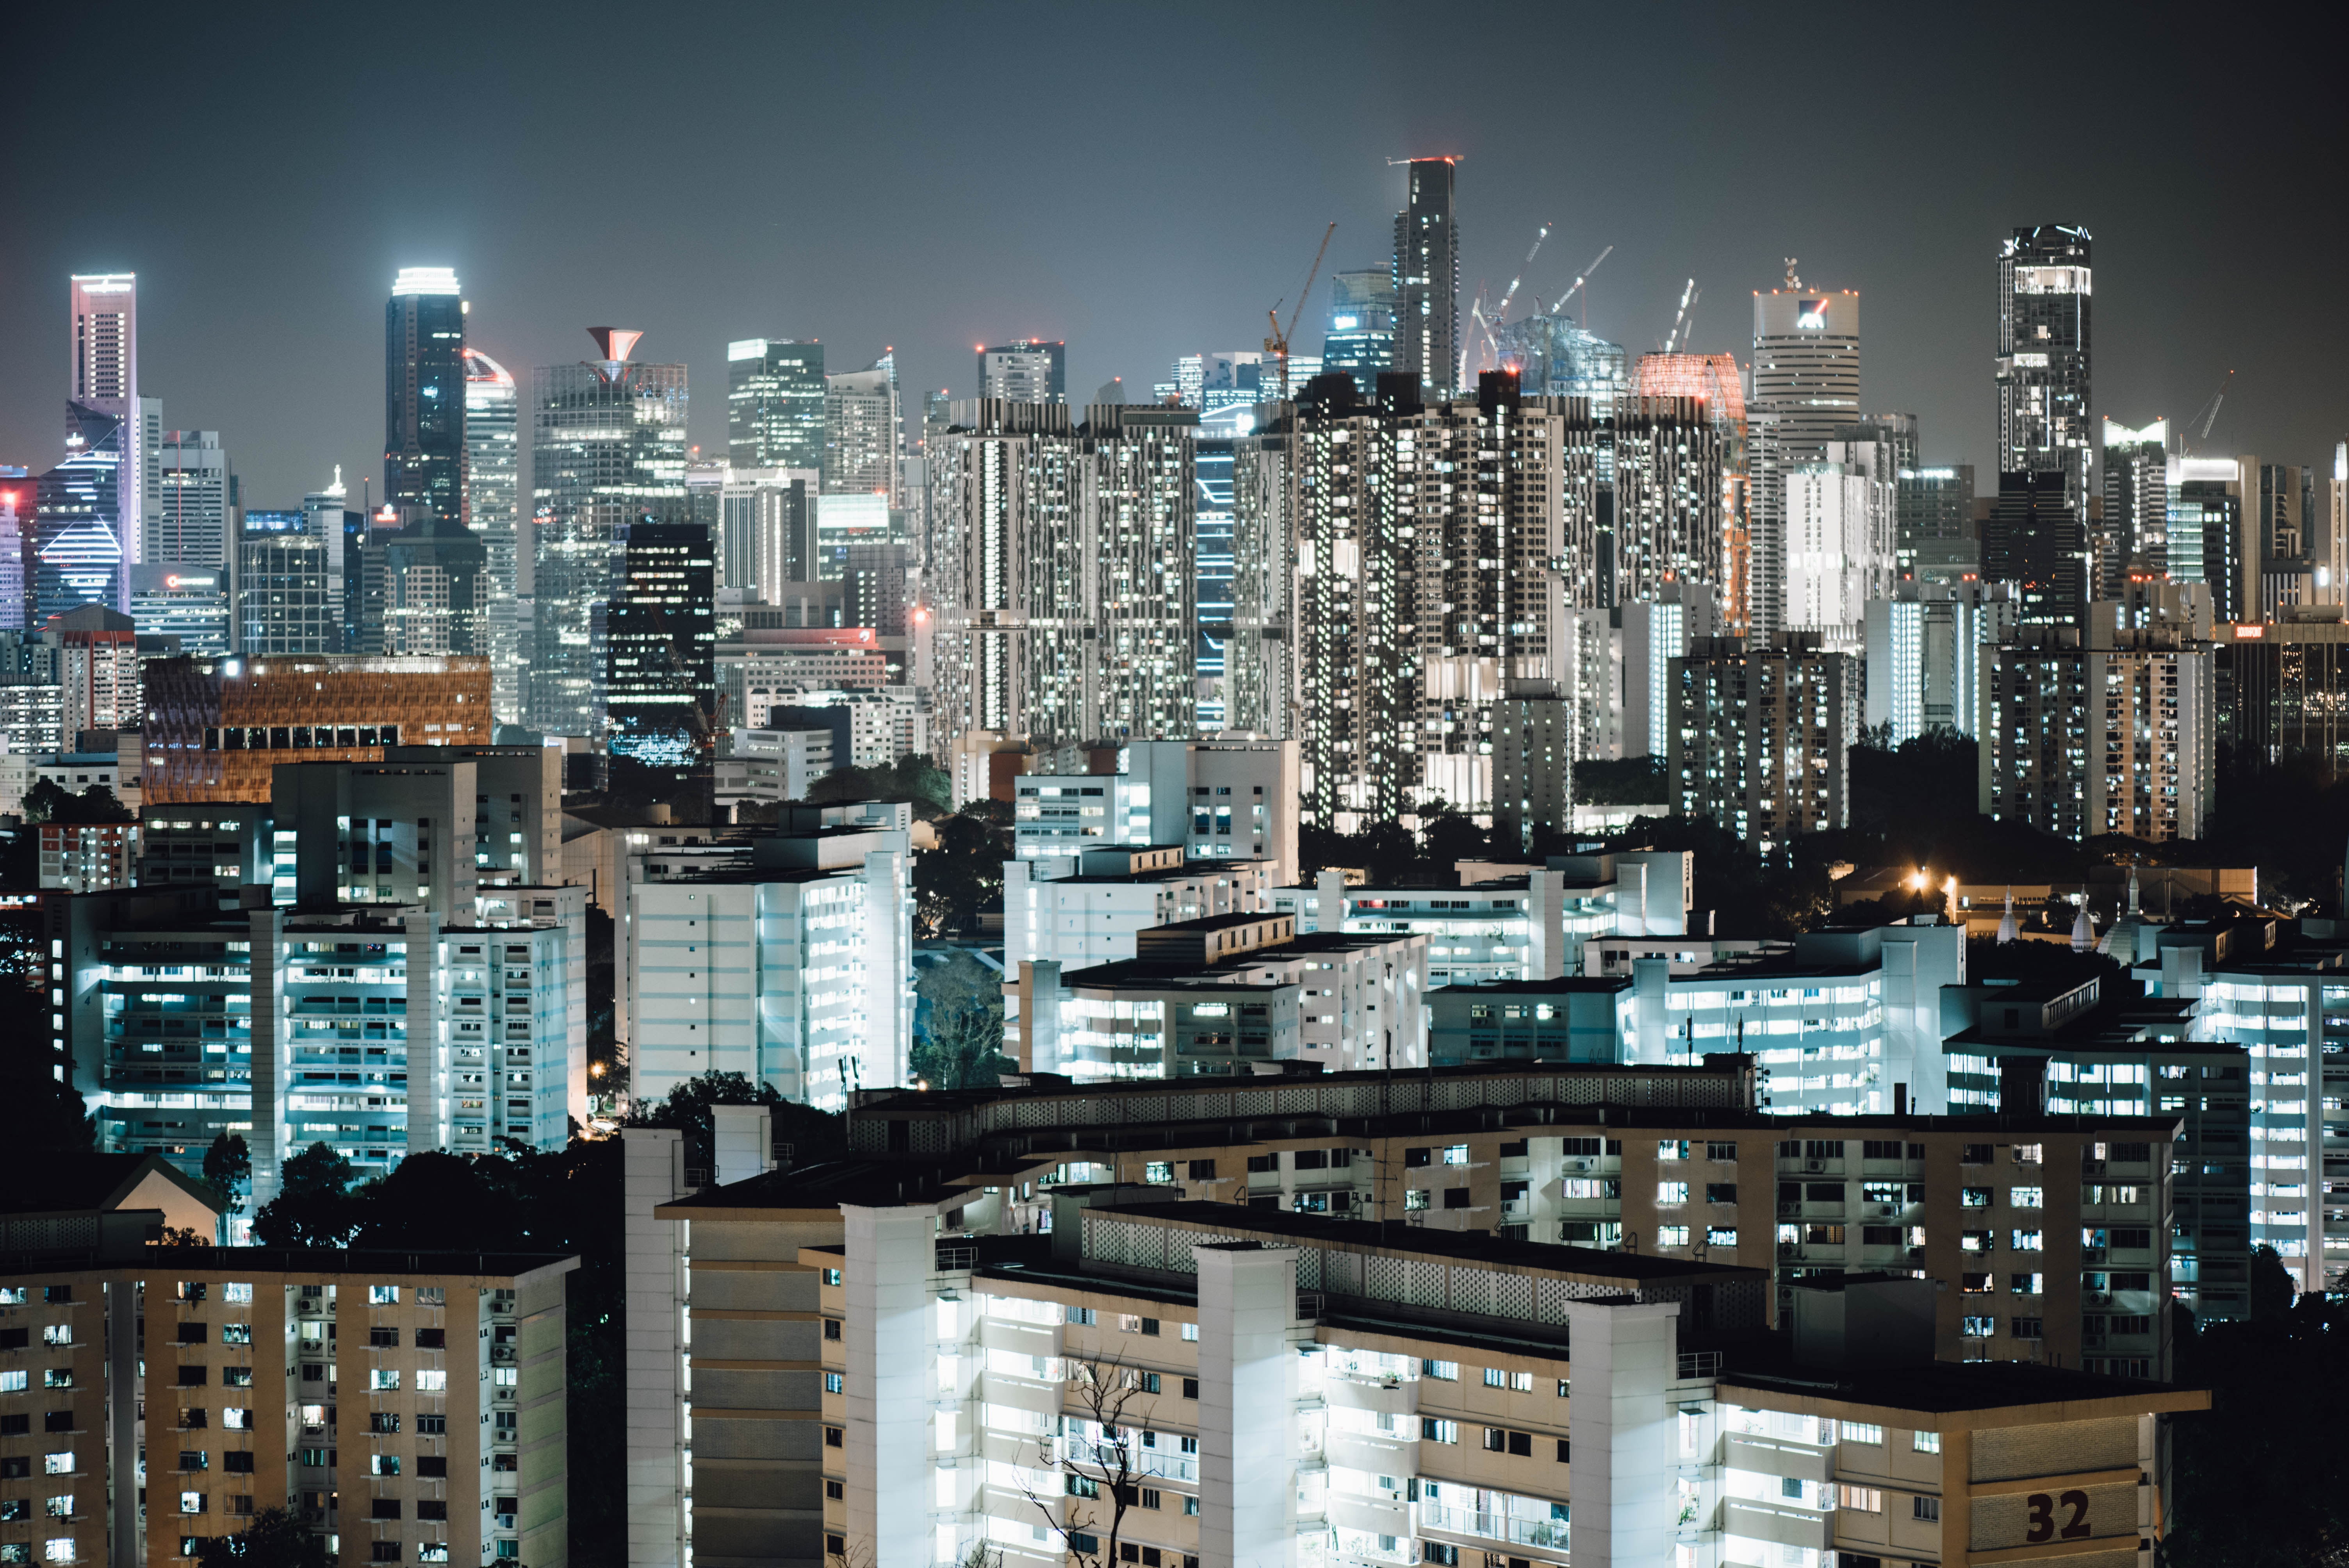 Bright lights in high-rises and skyscrapers in a city after dusk